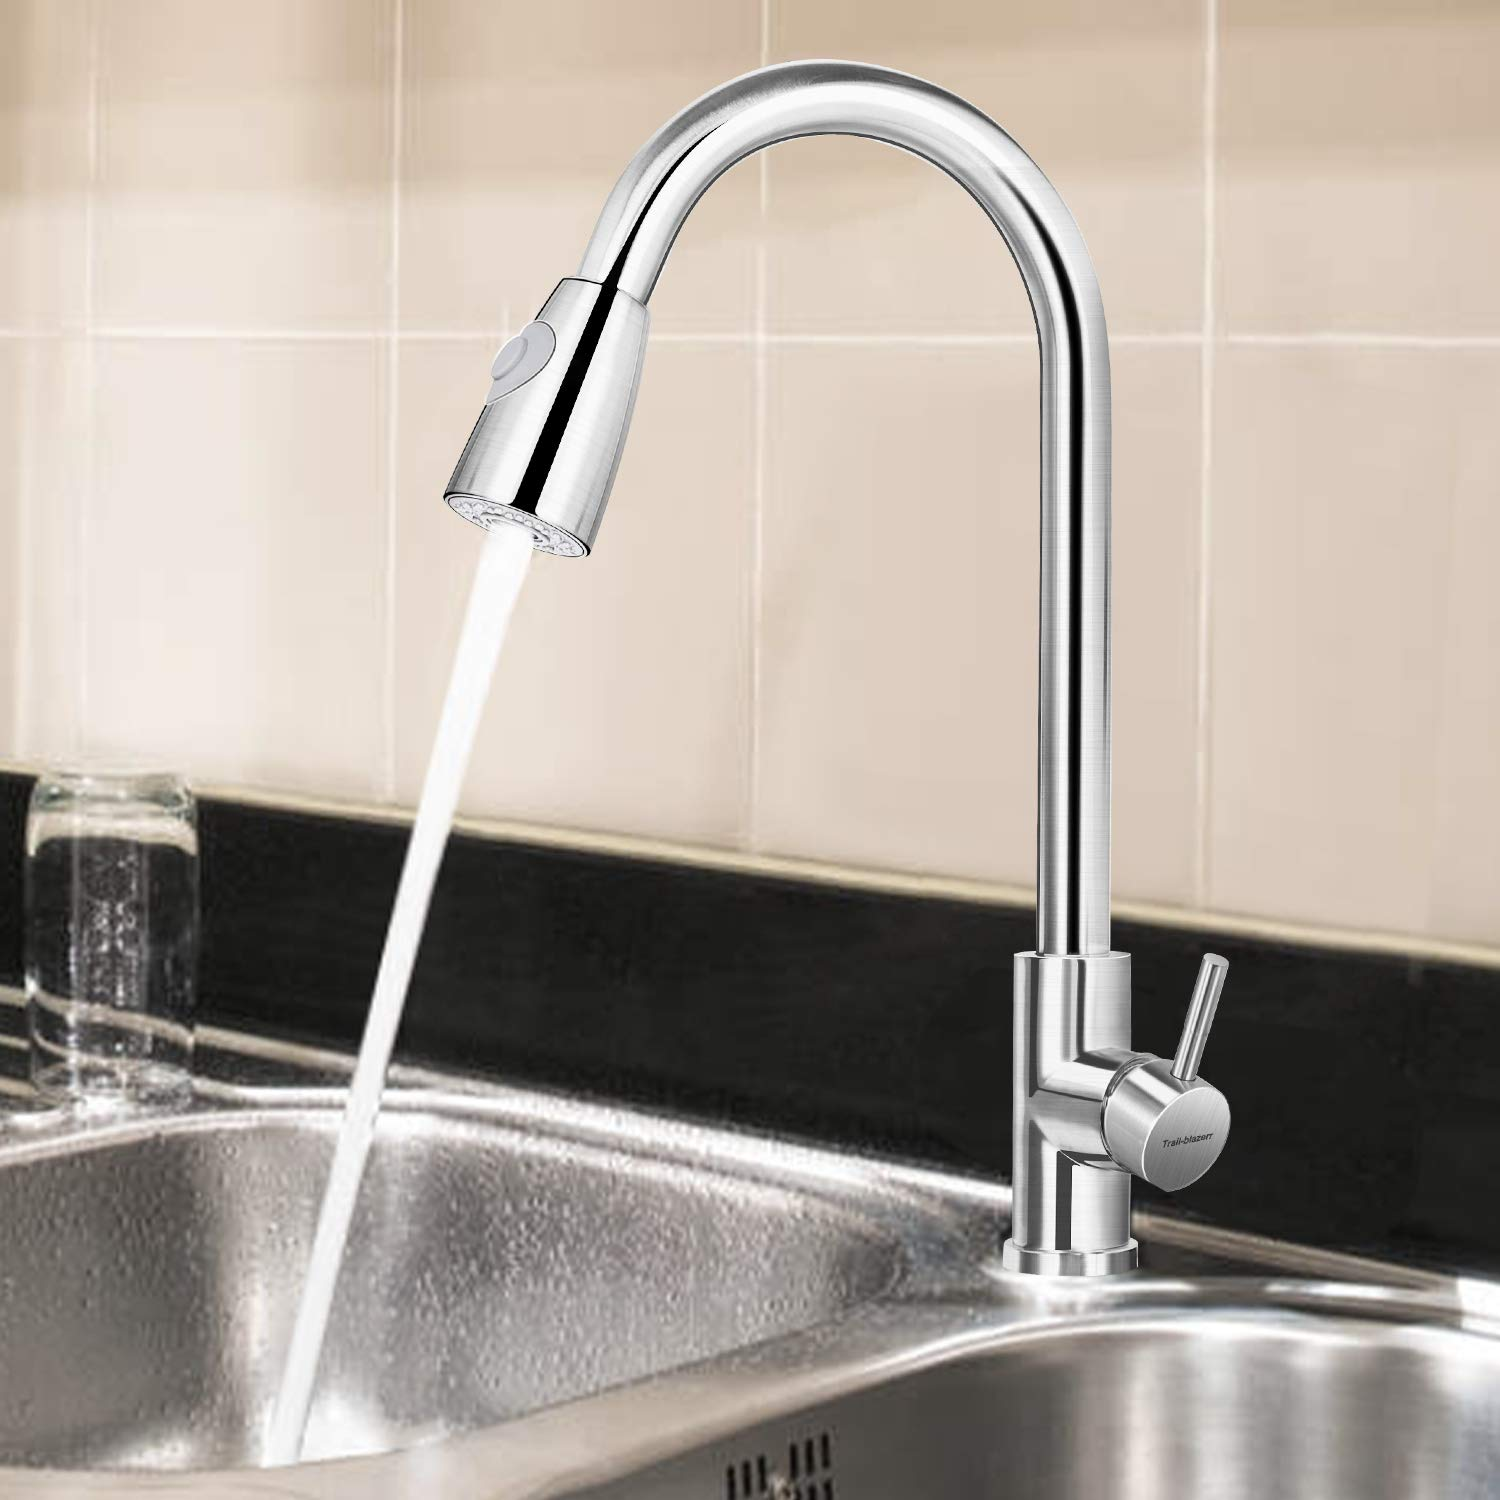 Kitchen Faucet, Kitchen Sink Faucet, Brushed Nickel Kitchen Faucets,  TRAIL-BLAZERR Single Handle High Arc Brushed Nickel Pull out Kitchen ...